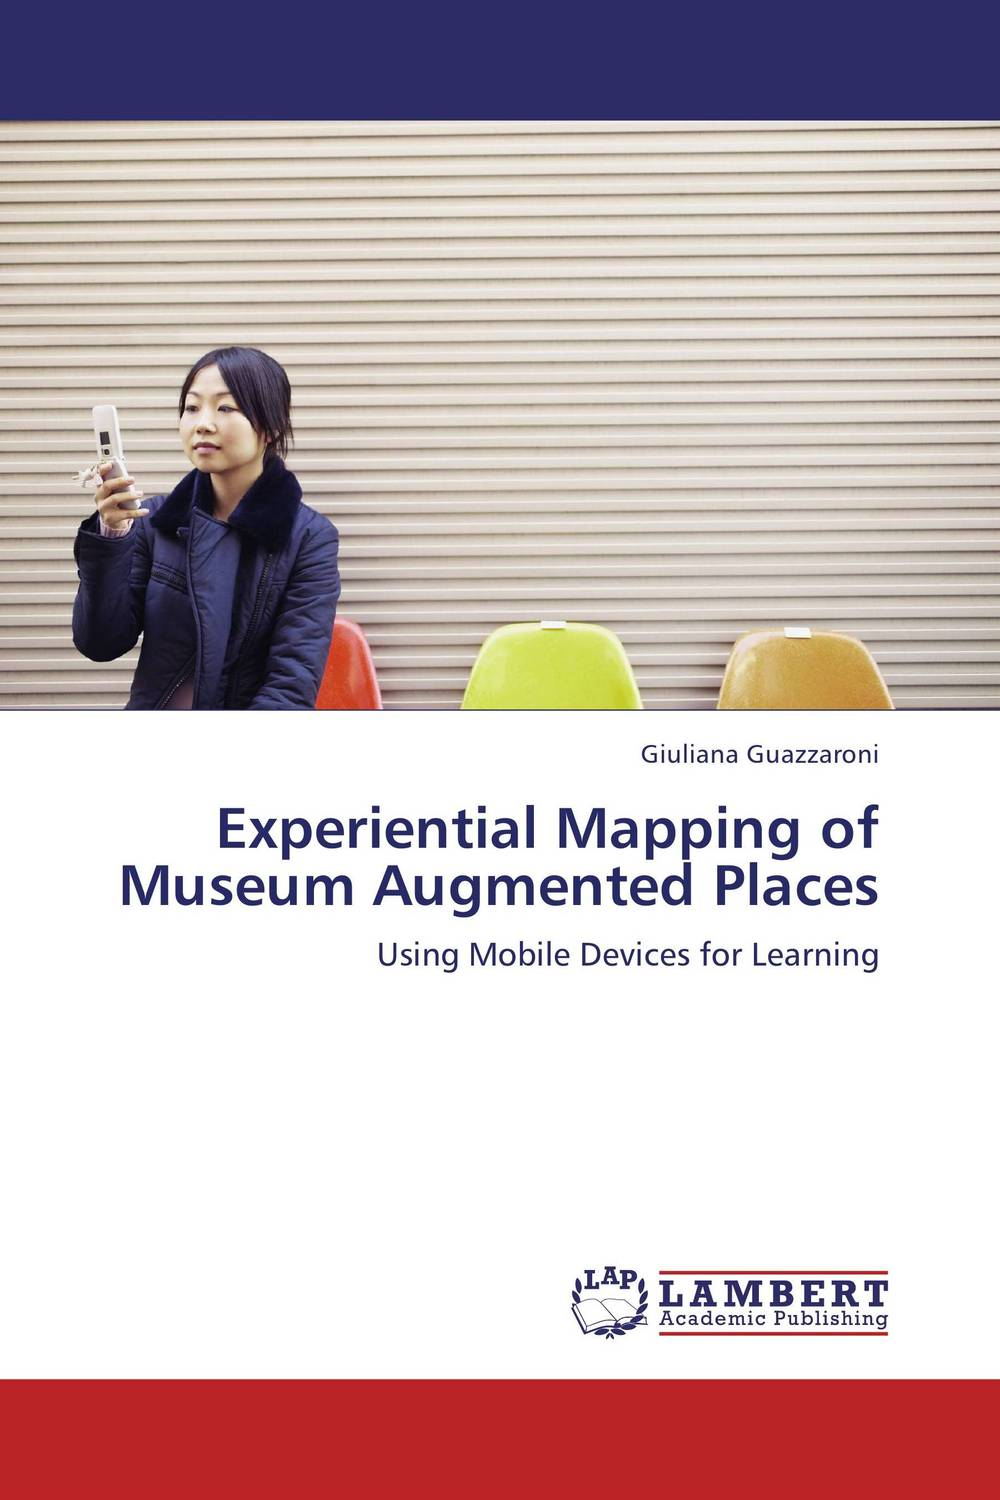 Experiential Mapping of Museum Augmented Places